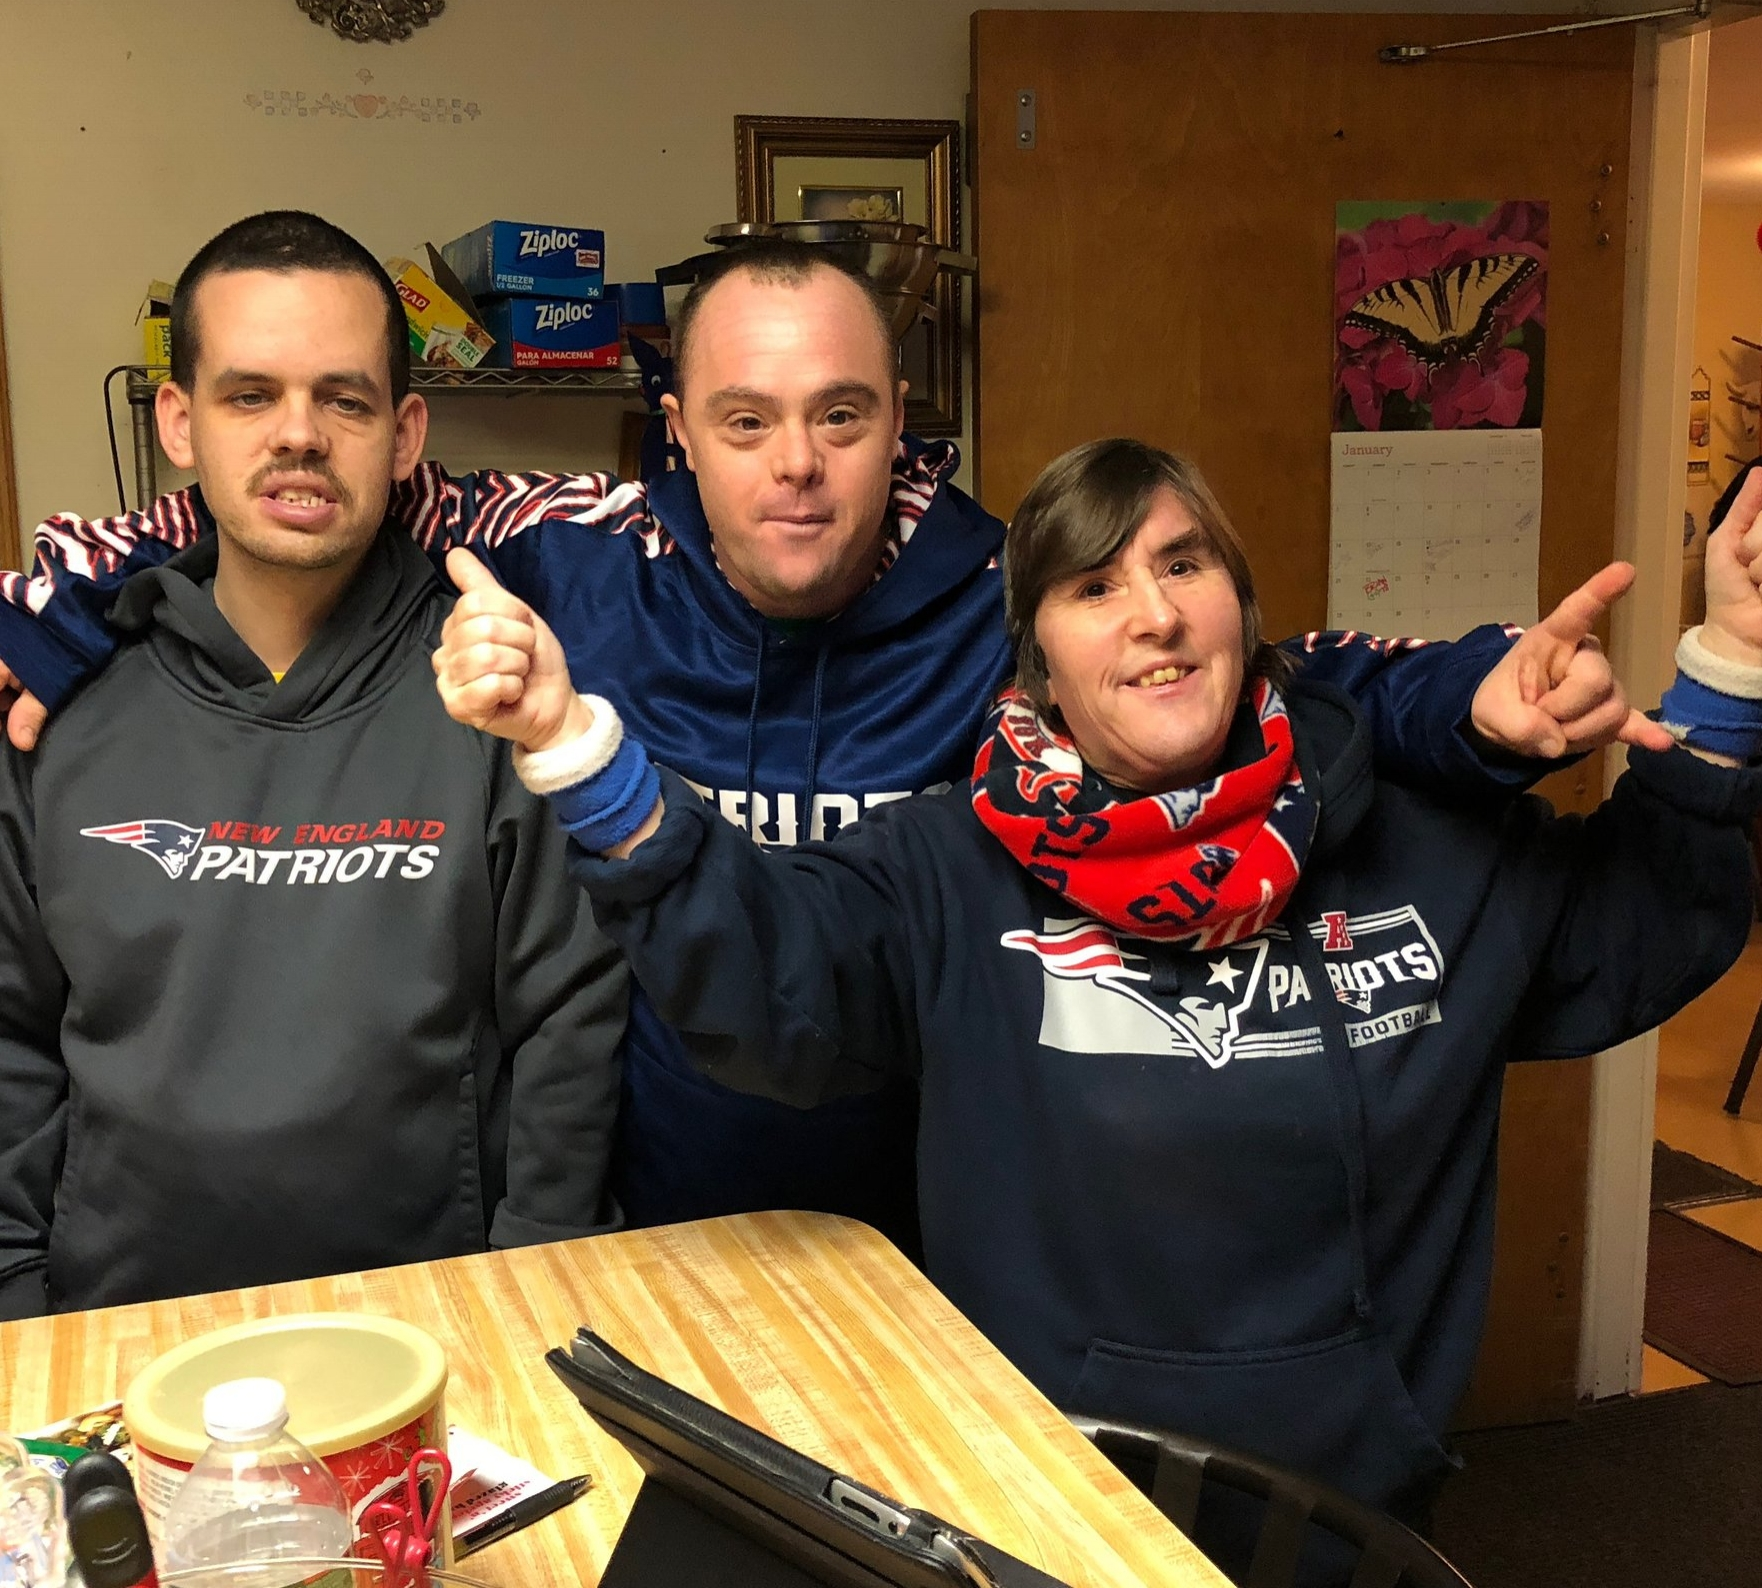 Go Patriots!! Getting psyched for the game.